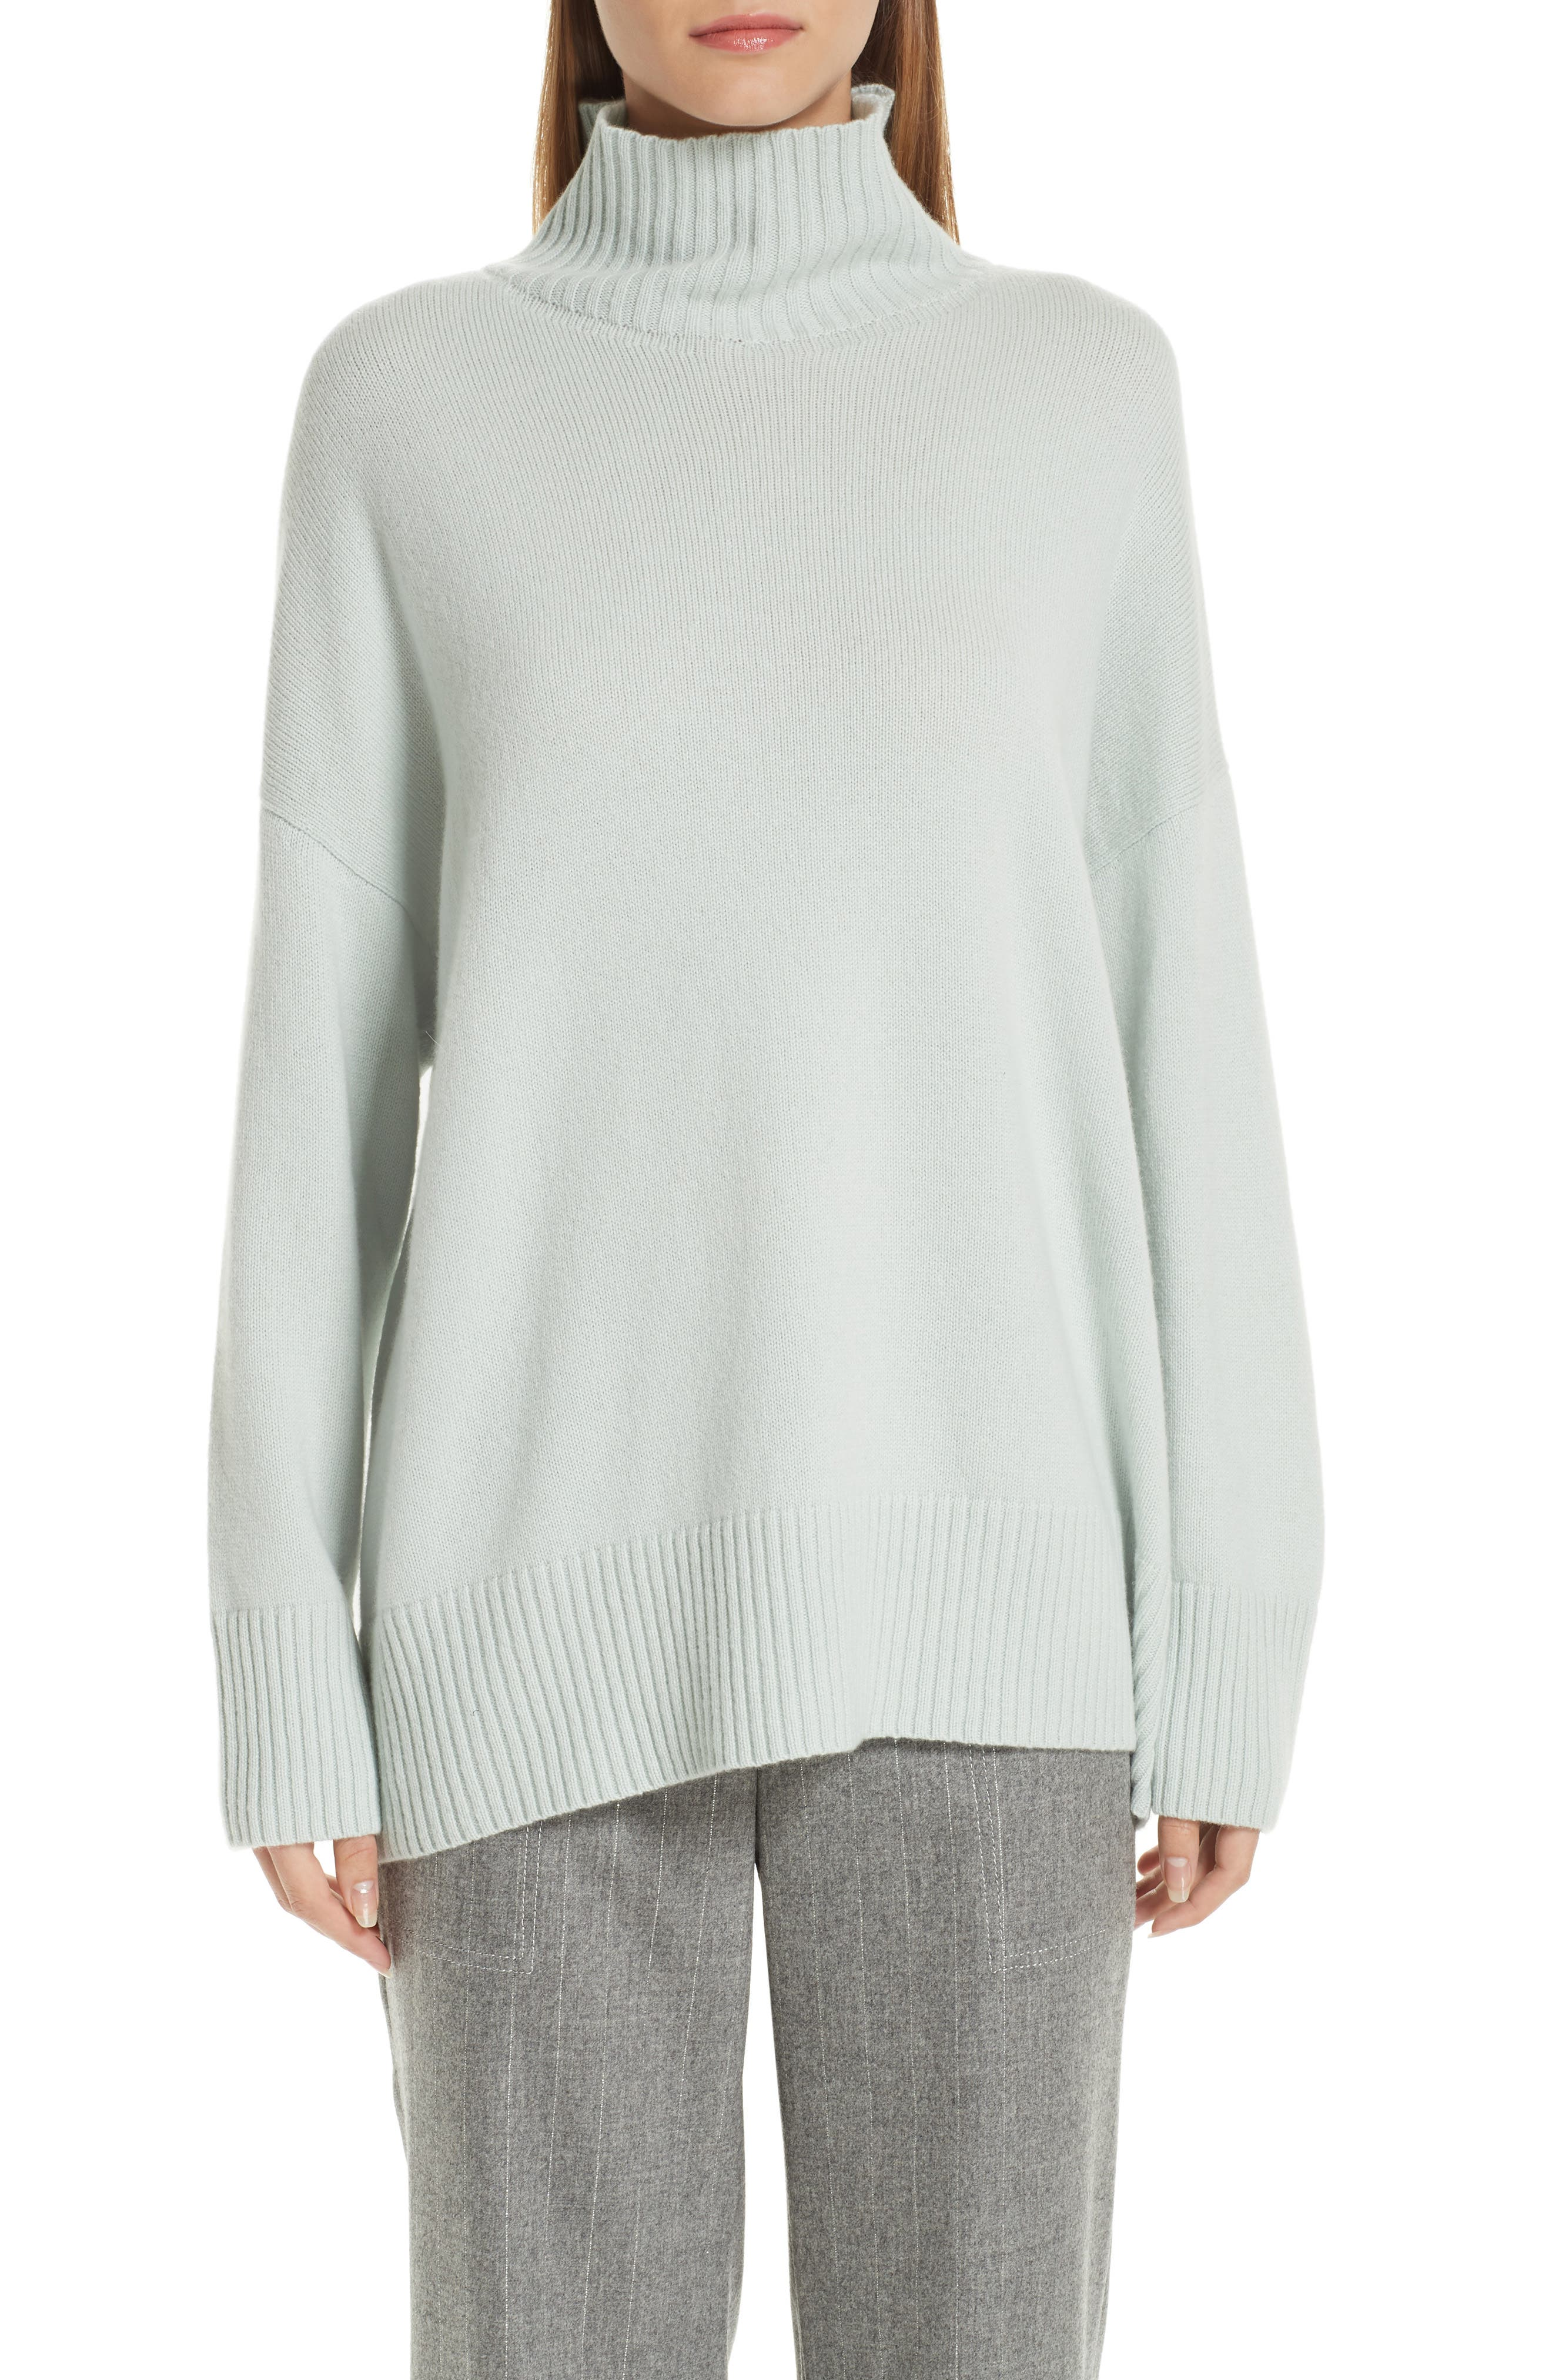 LAFAYETTE 148 NEW YORK,                             Relaxed Cashmere Turtleneck Sweater,                             Main thumbnail 1, color,                             400